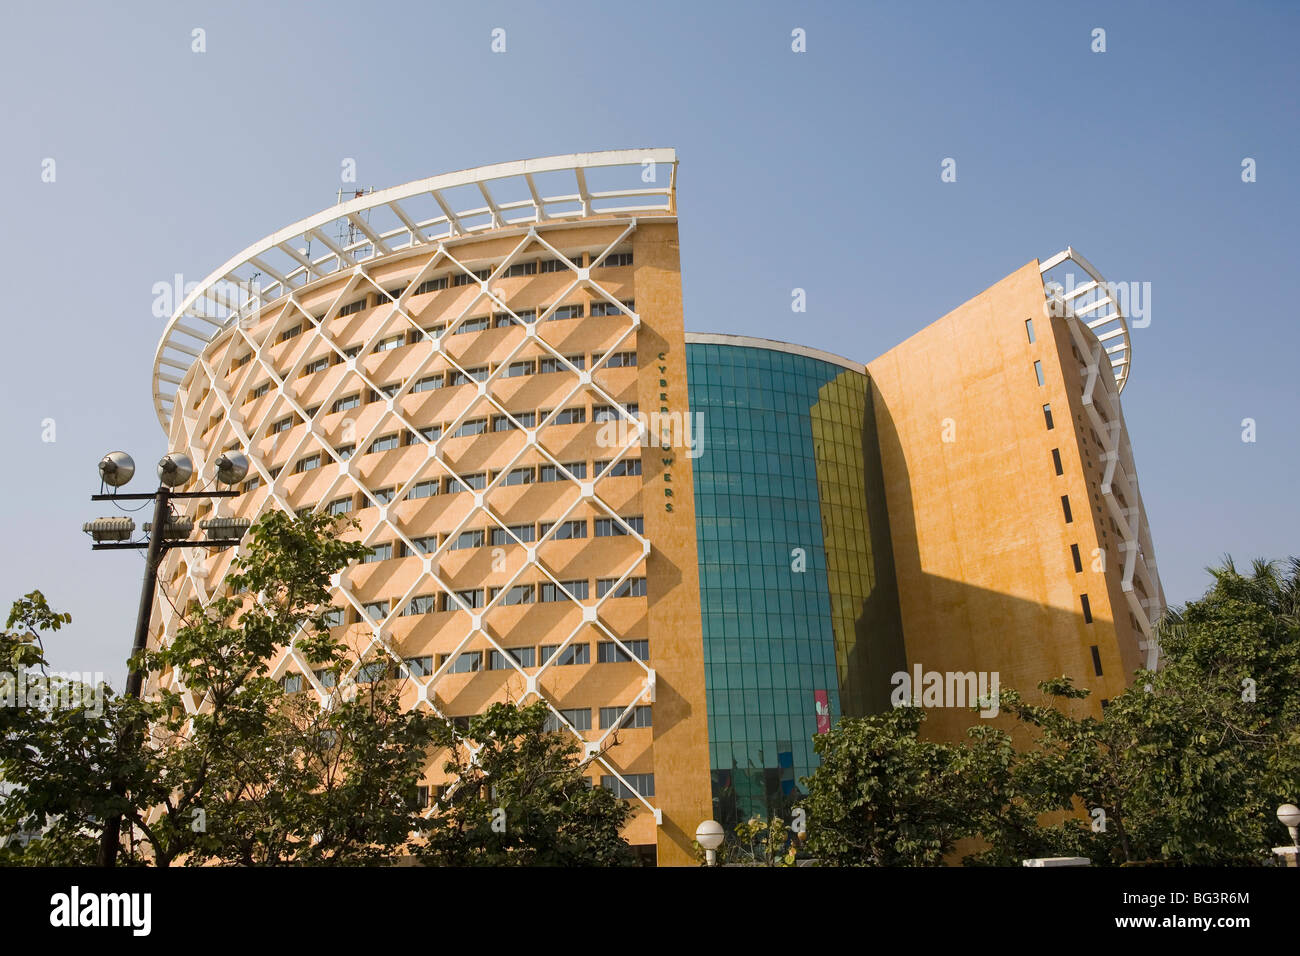 Cyber Towers in Hi-Tech city, Hyderabad, Andhra Pradesh state, India, Asia Stock Photo